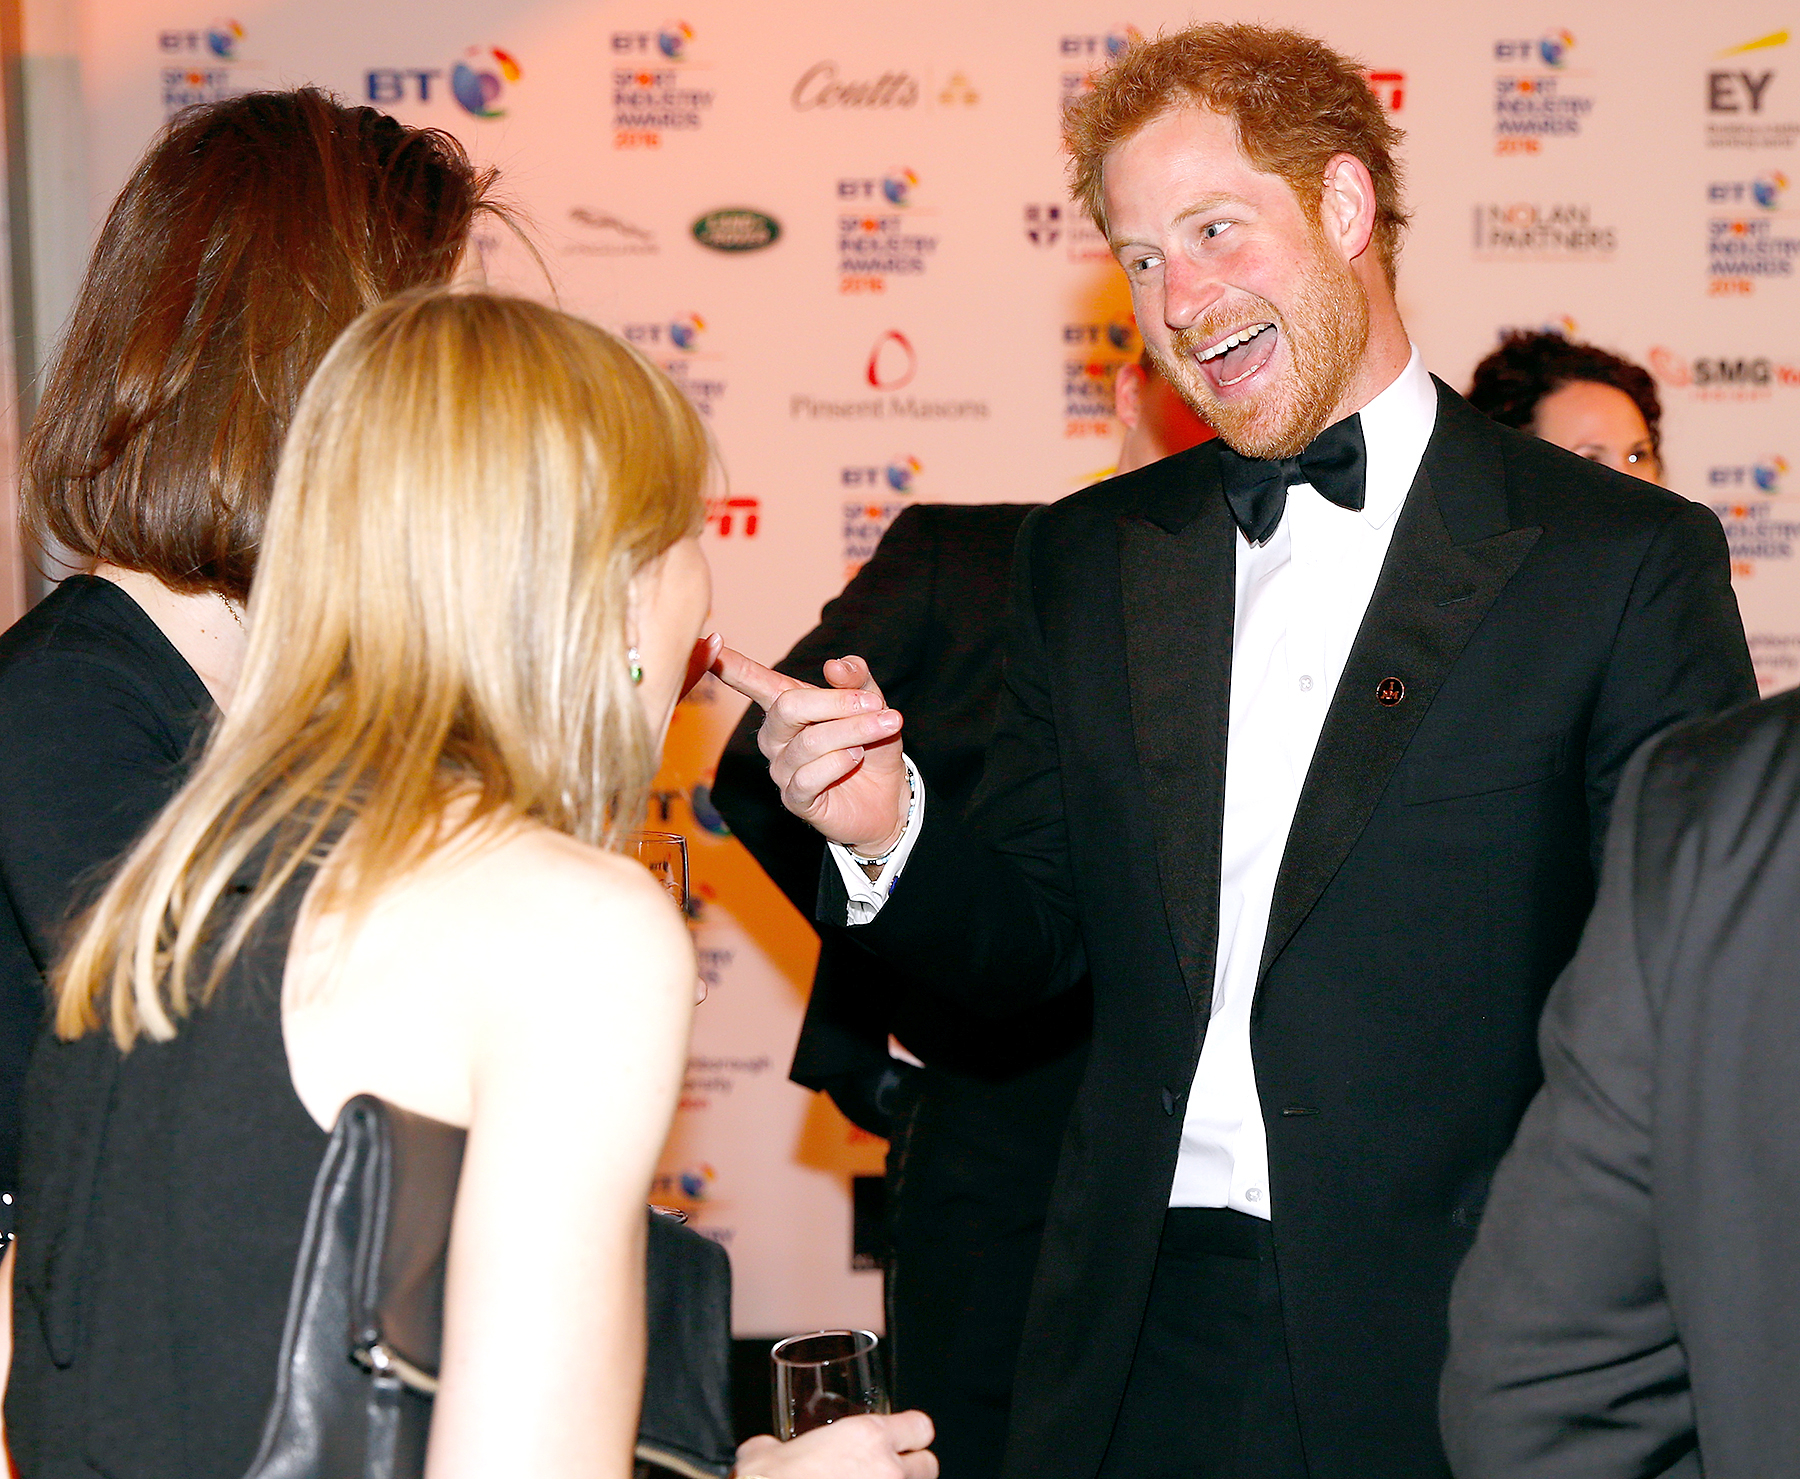 Prince Harry talks with guests at the BT Sport Industry Awards 2016 at Battersea Evolution on April 28, 2016 in London, England.